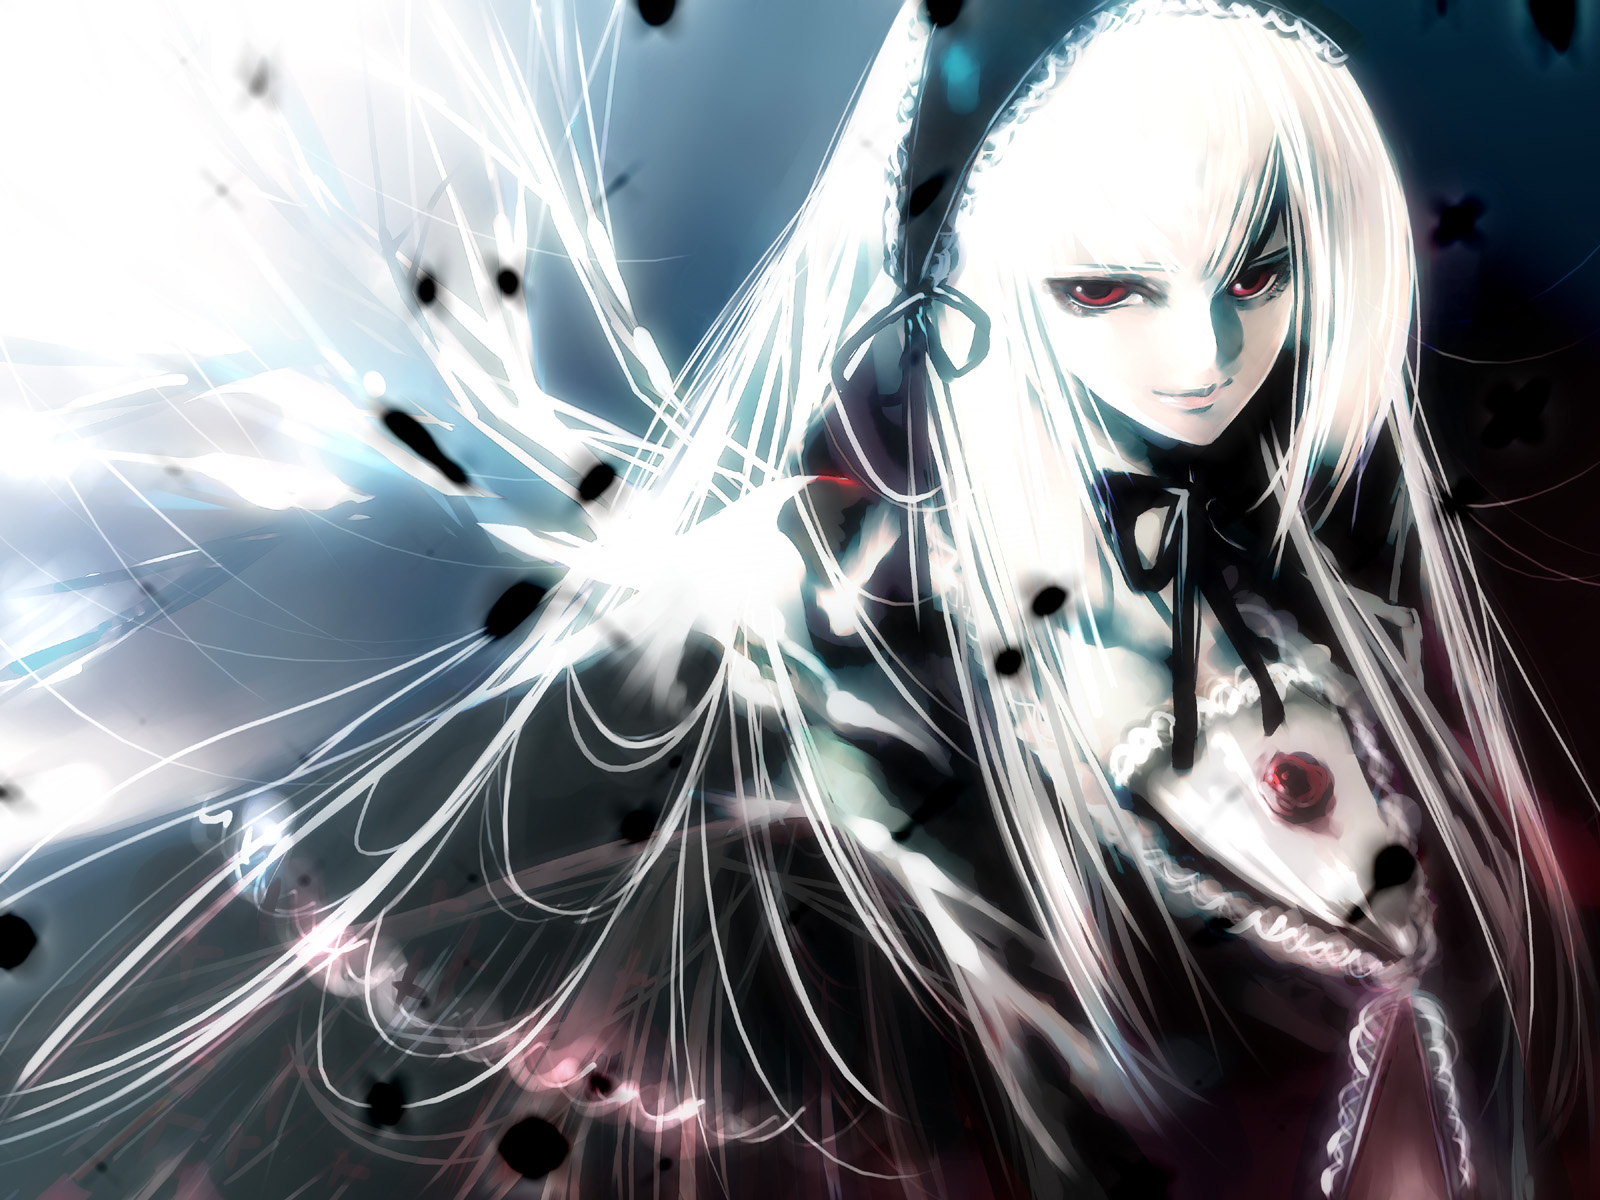 Download-Anime-Best-Amazing-Top-x-Full-HD-wallpaper-wp3604964